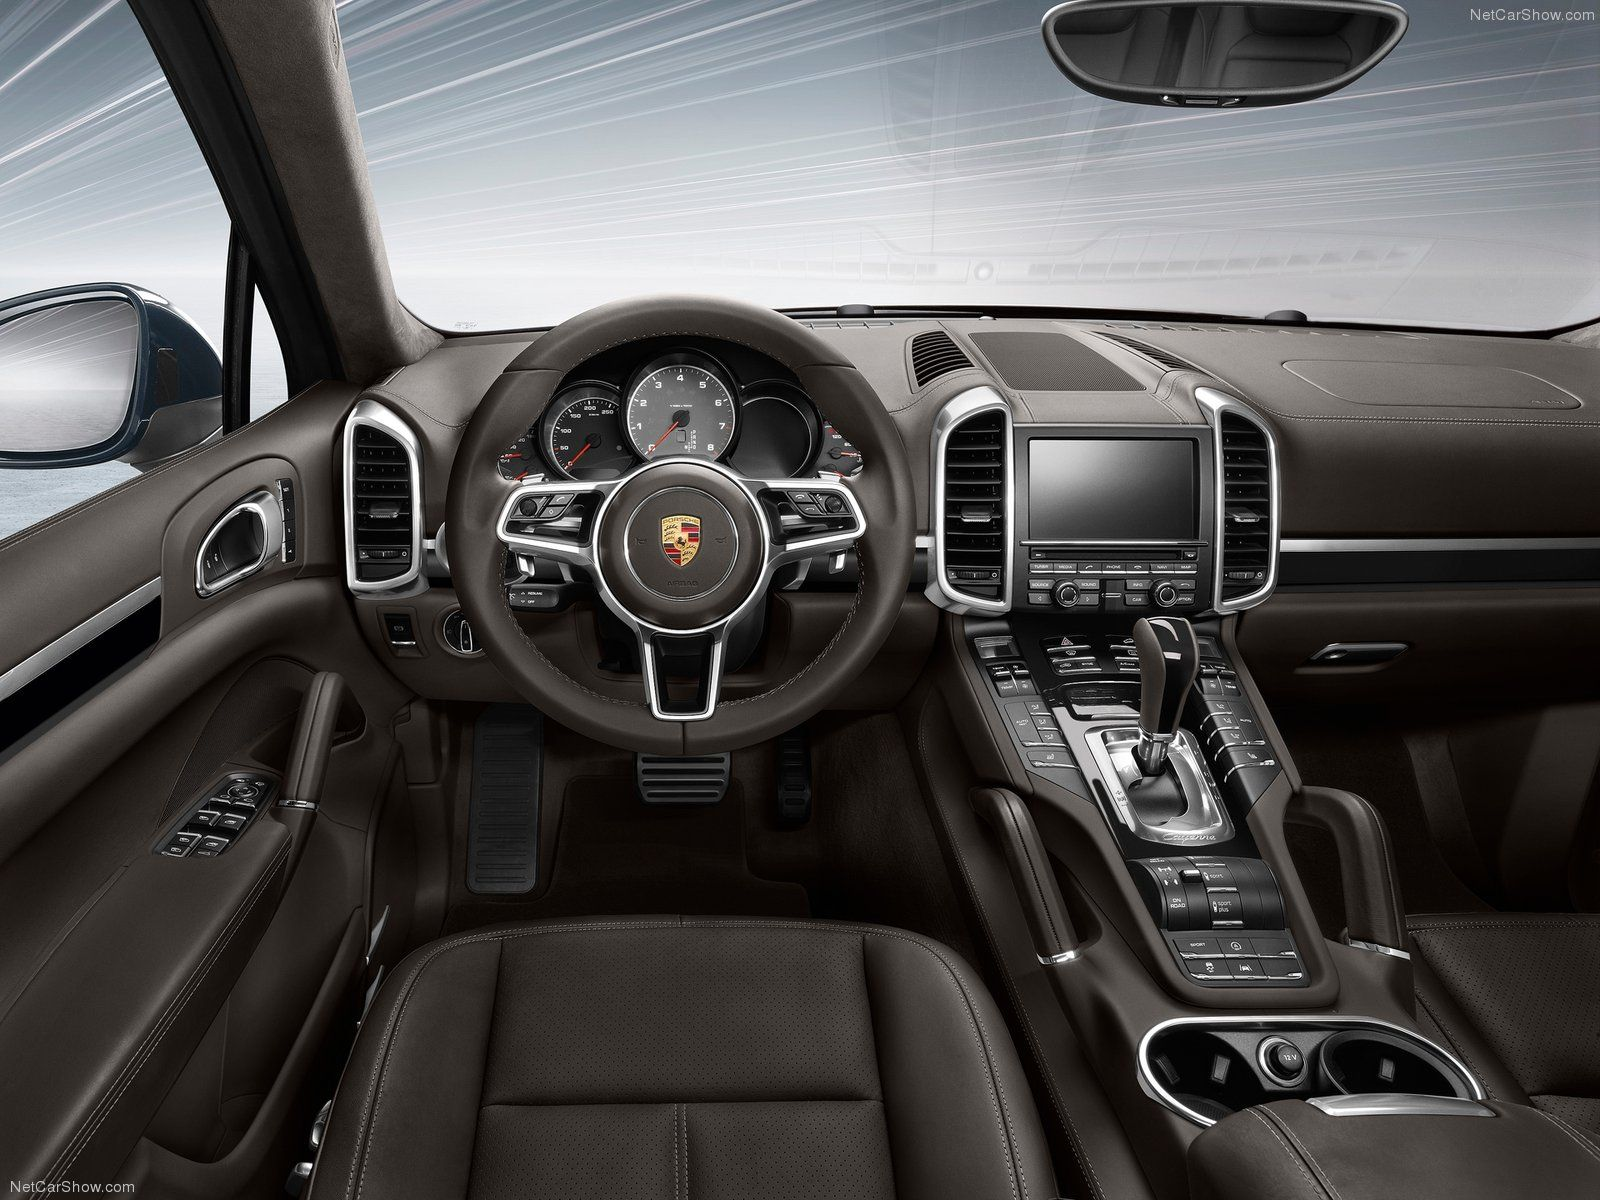 porsche-cayenne_2015_1600x1200_wallpaper_2a | | automotive